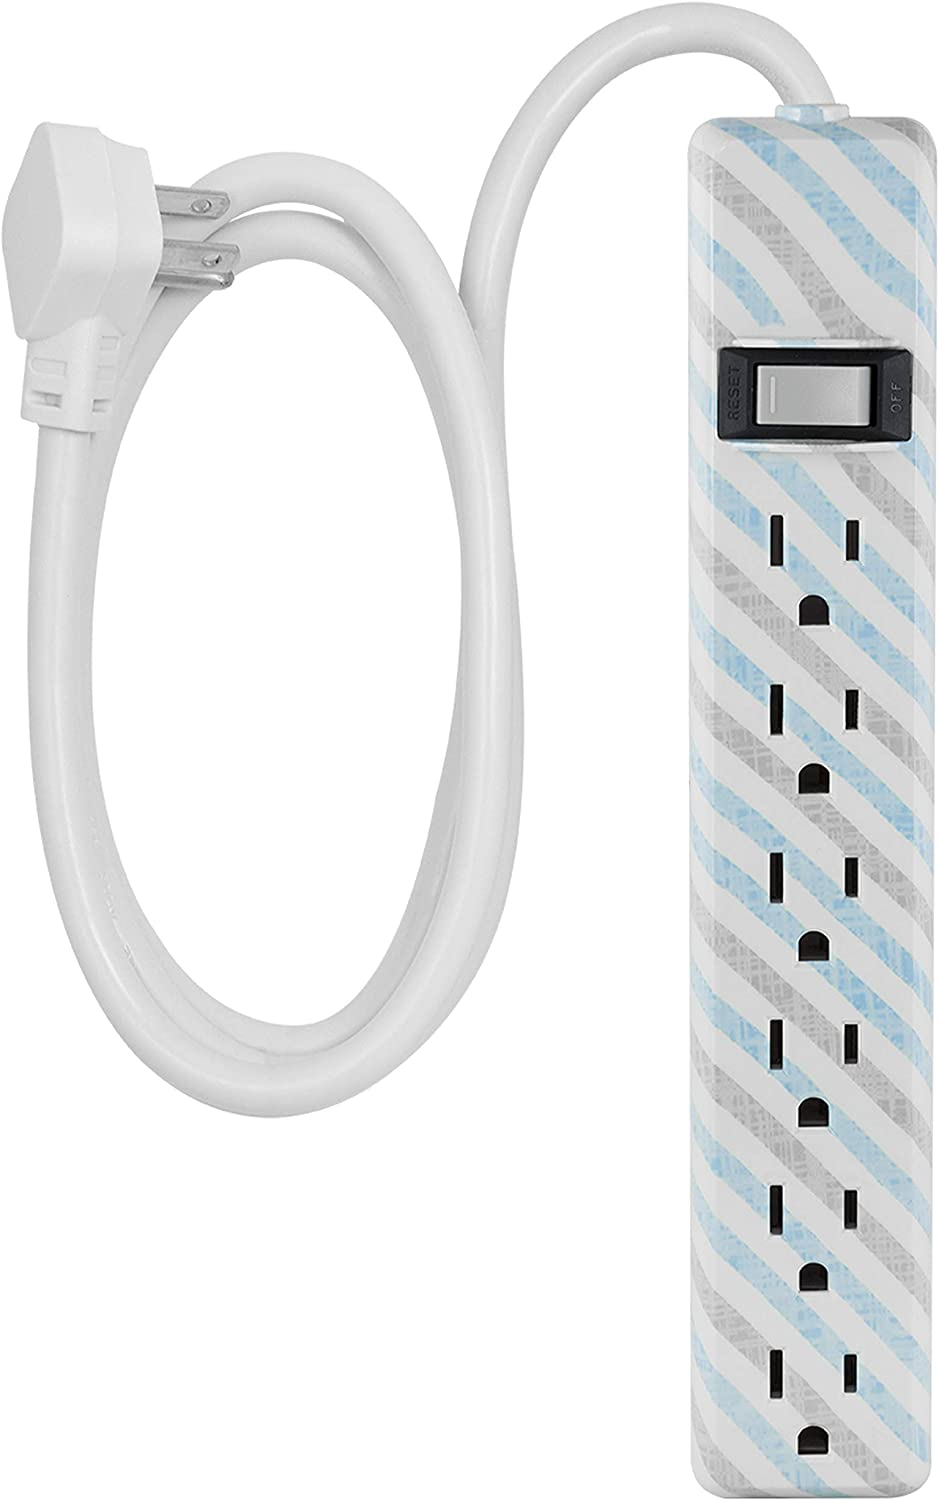 Decorative Mint Power Strip Braided Cord Wall Mount 44205 Tangle-Free 3 ft Power Cord Warranty Cordinate 6-Outlet Surge Protector Flat Plug